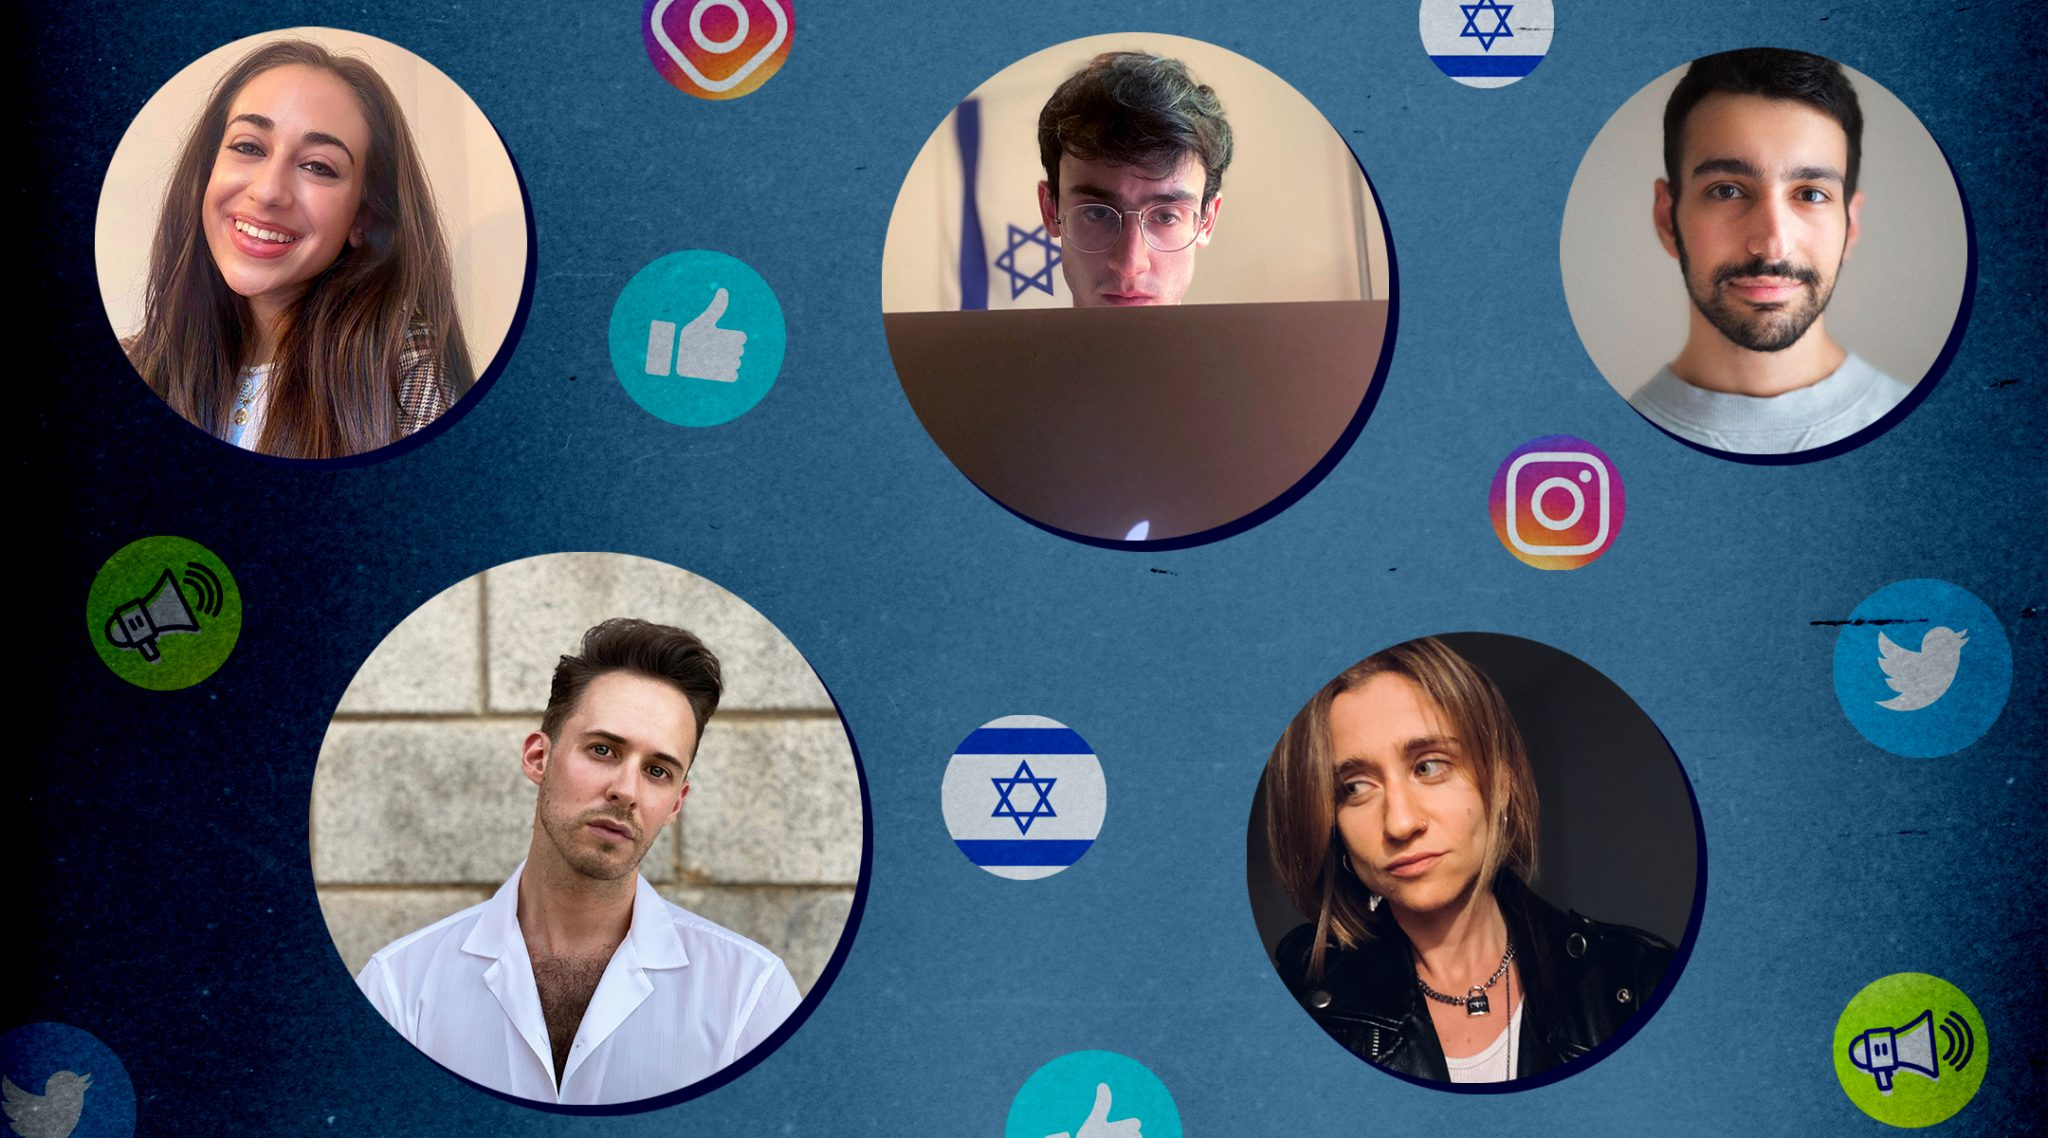 A cohort of young Jews is trying to combat antisemitism and anti-Zionism on social media. Clockwise from top left: Julia Jassey, Blake Flayton, Isaac de Castro, Eve Barlow and Ben Freeman. (Photo illustration/JTA-Grace Yagel)